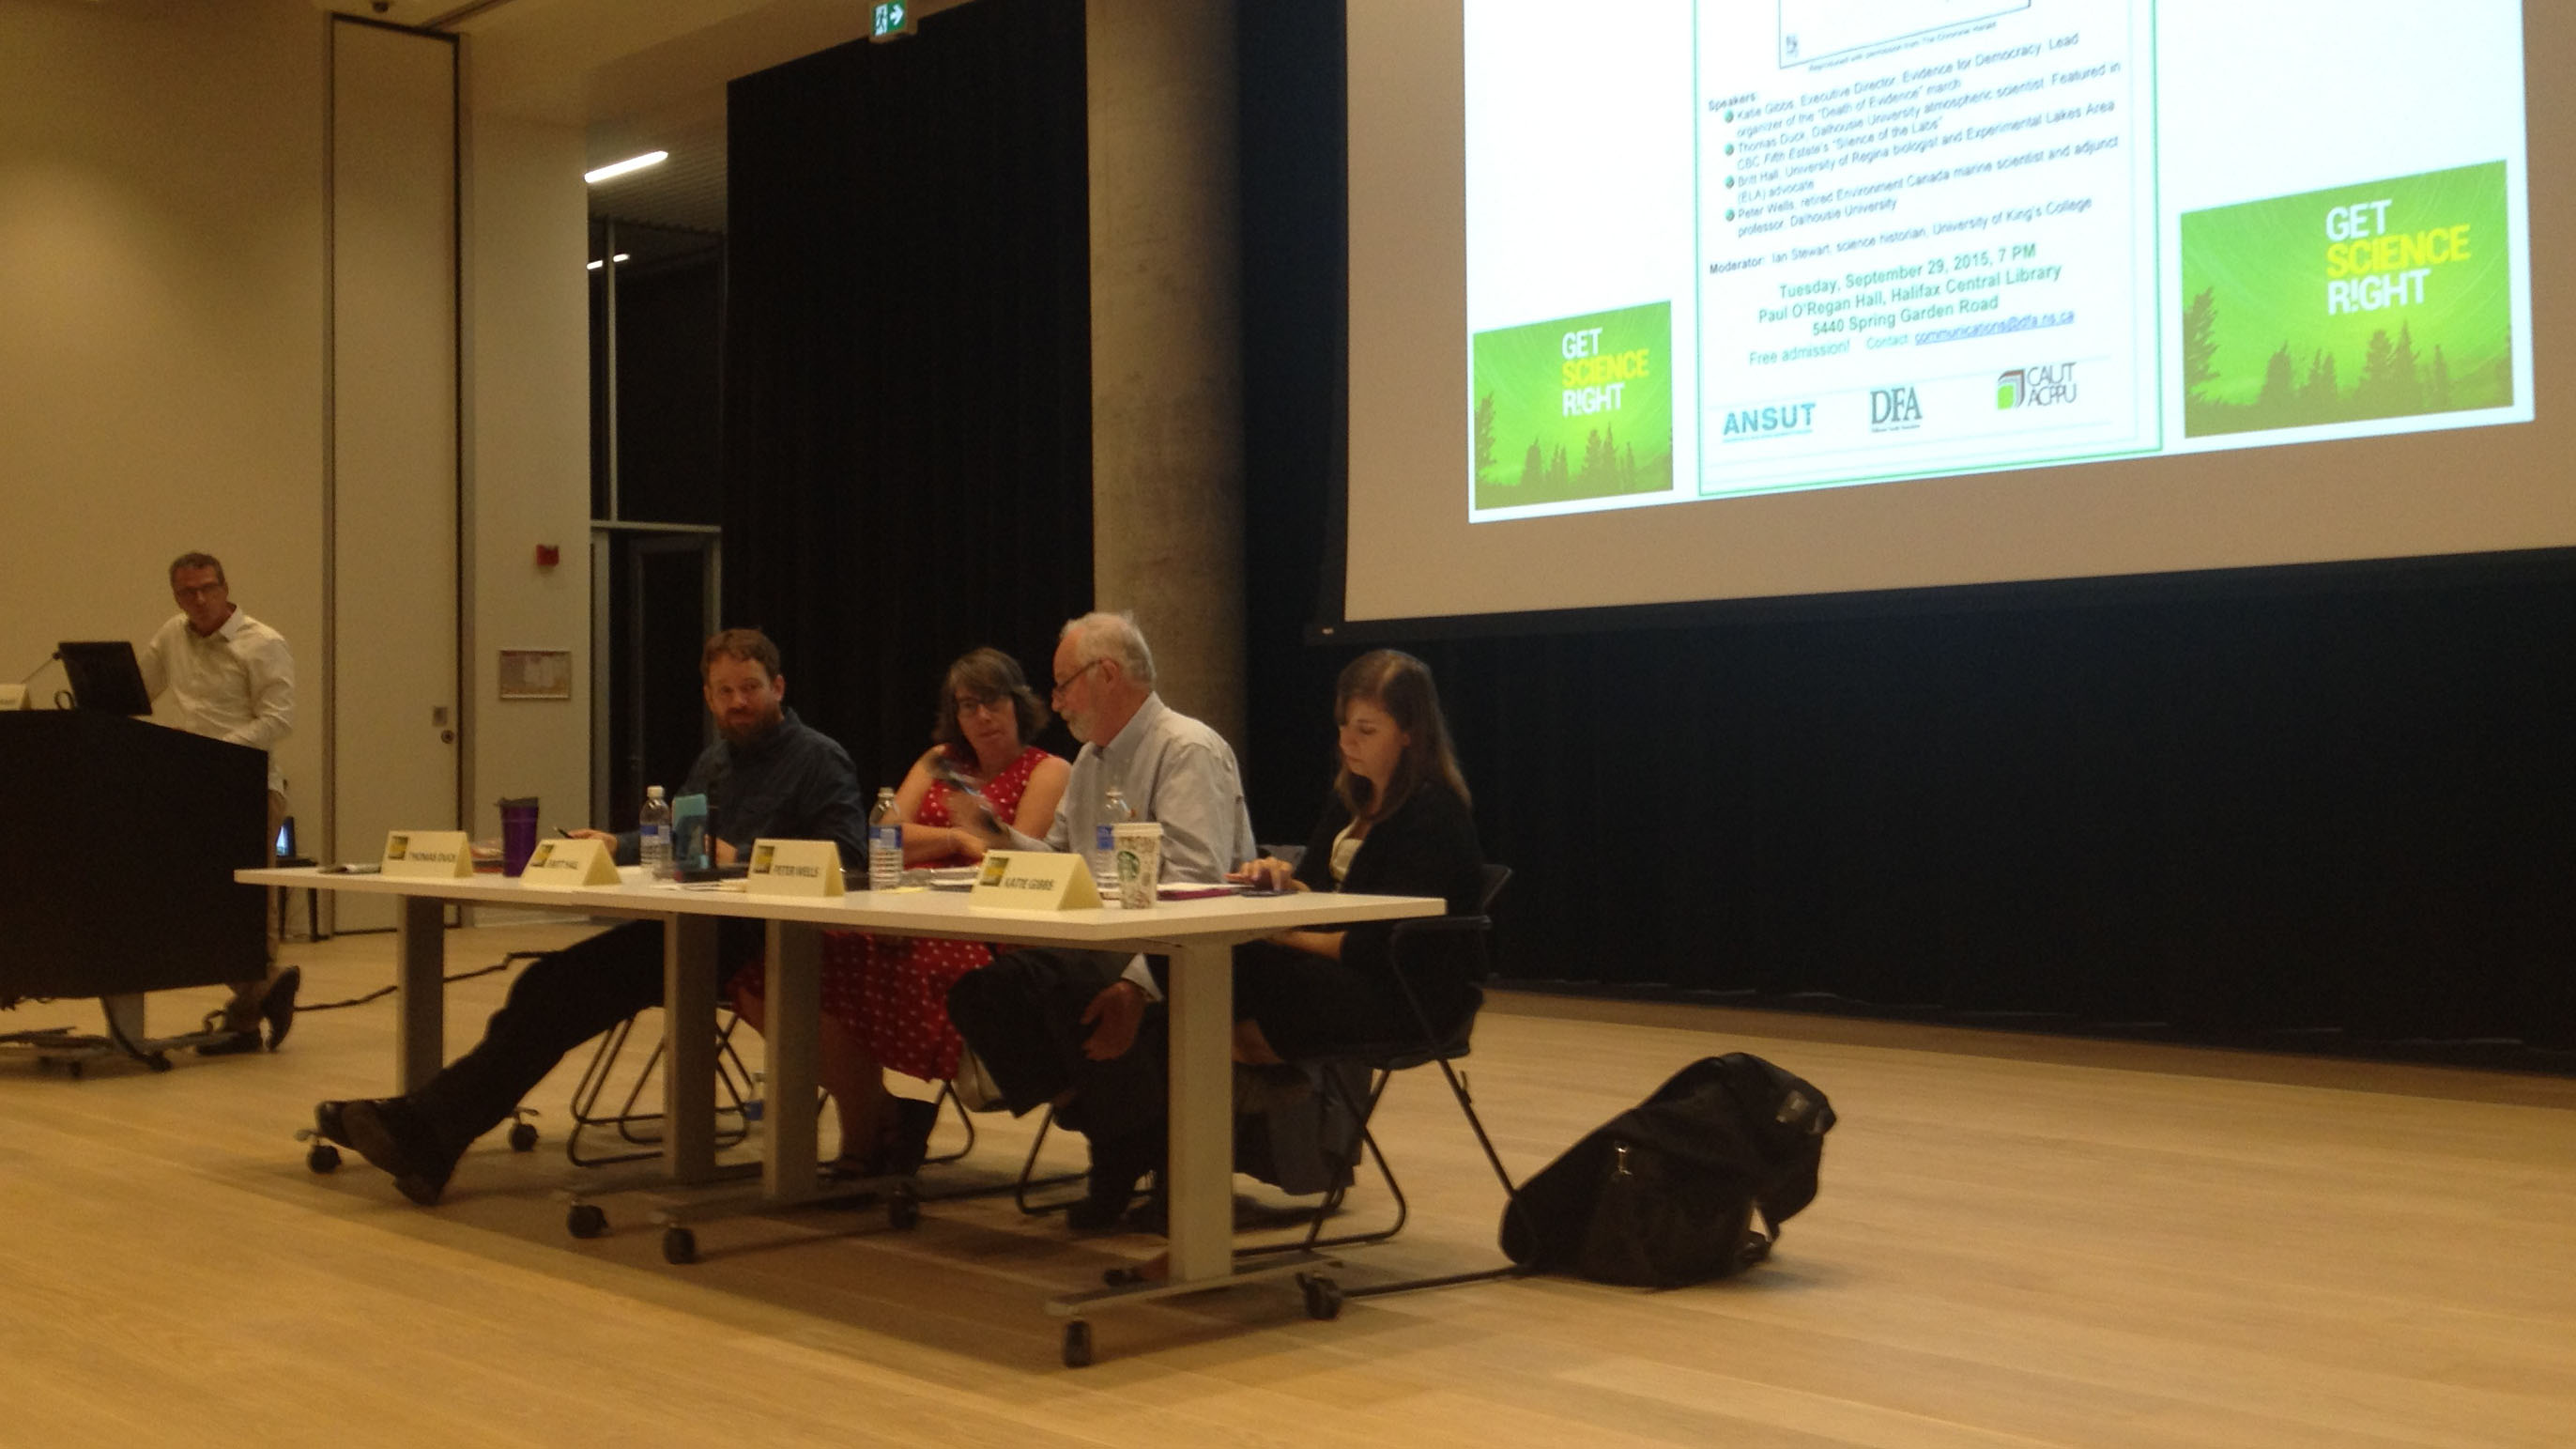 Panelists from the left: Thomas Duck, Britt Hall, Peter Wells and Katie Gibbs.